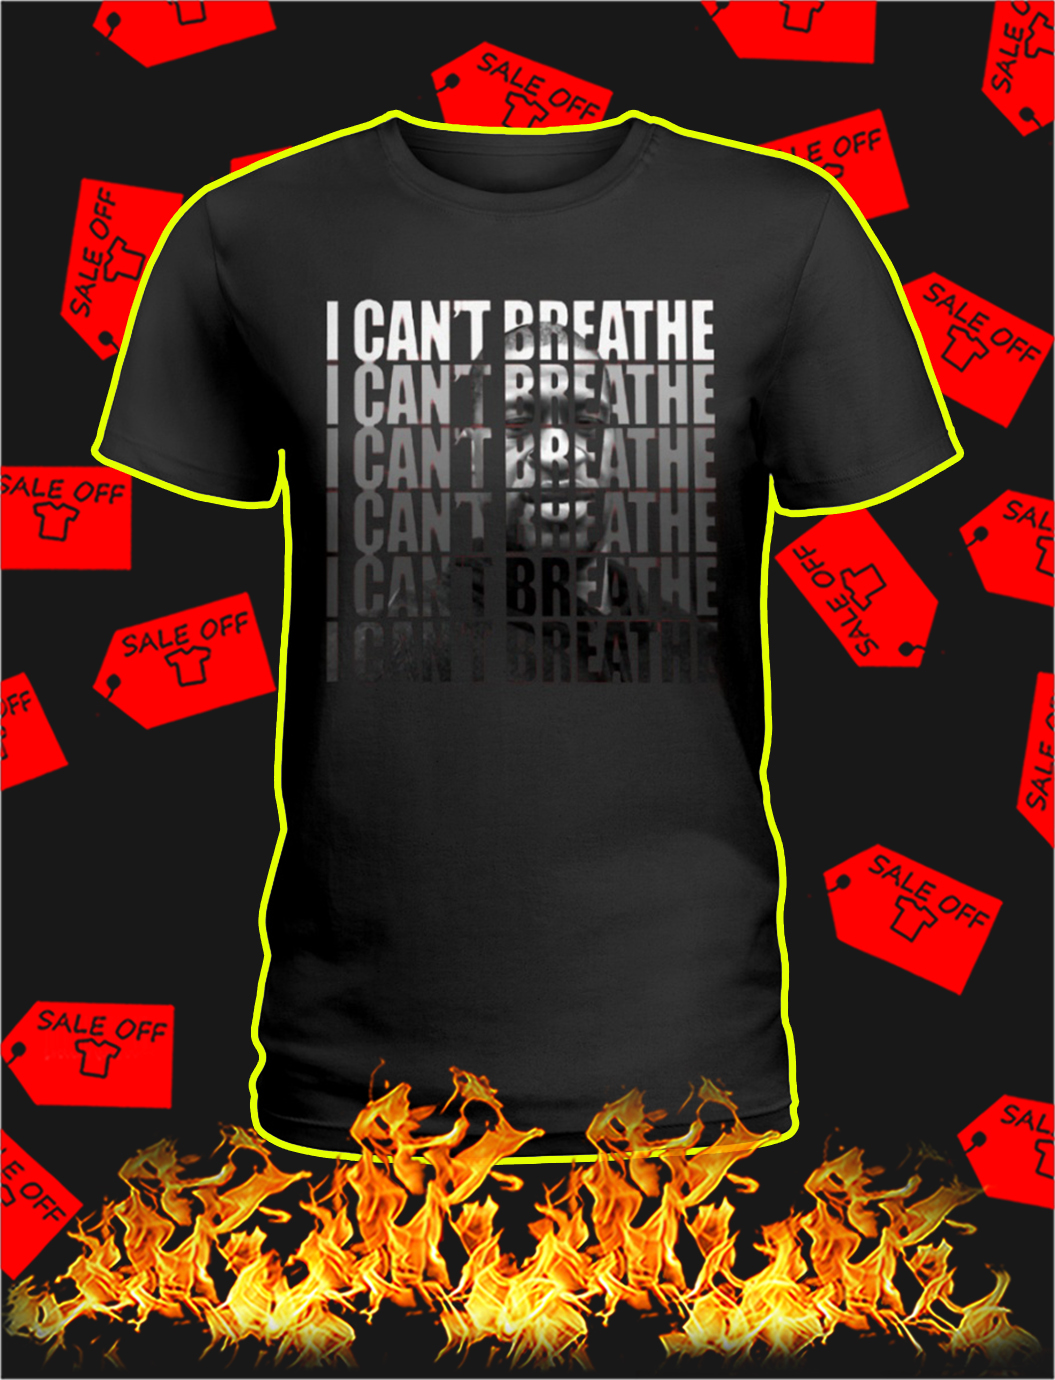 I can't breathe i can't breathe lady shirt